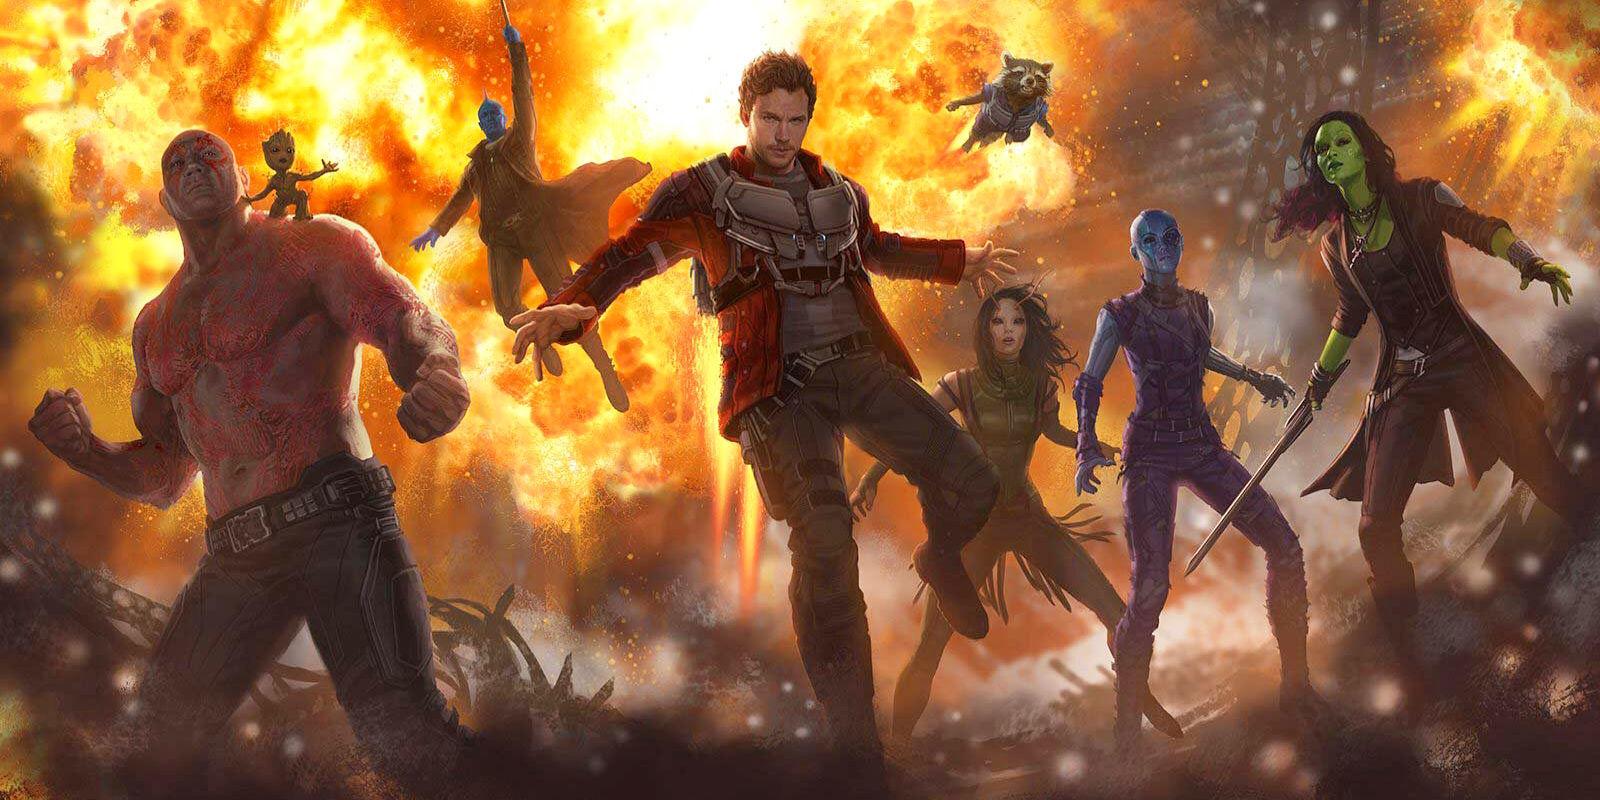 Guardians of the Galaxy's future potentially lies in one character's hand